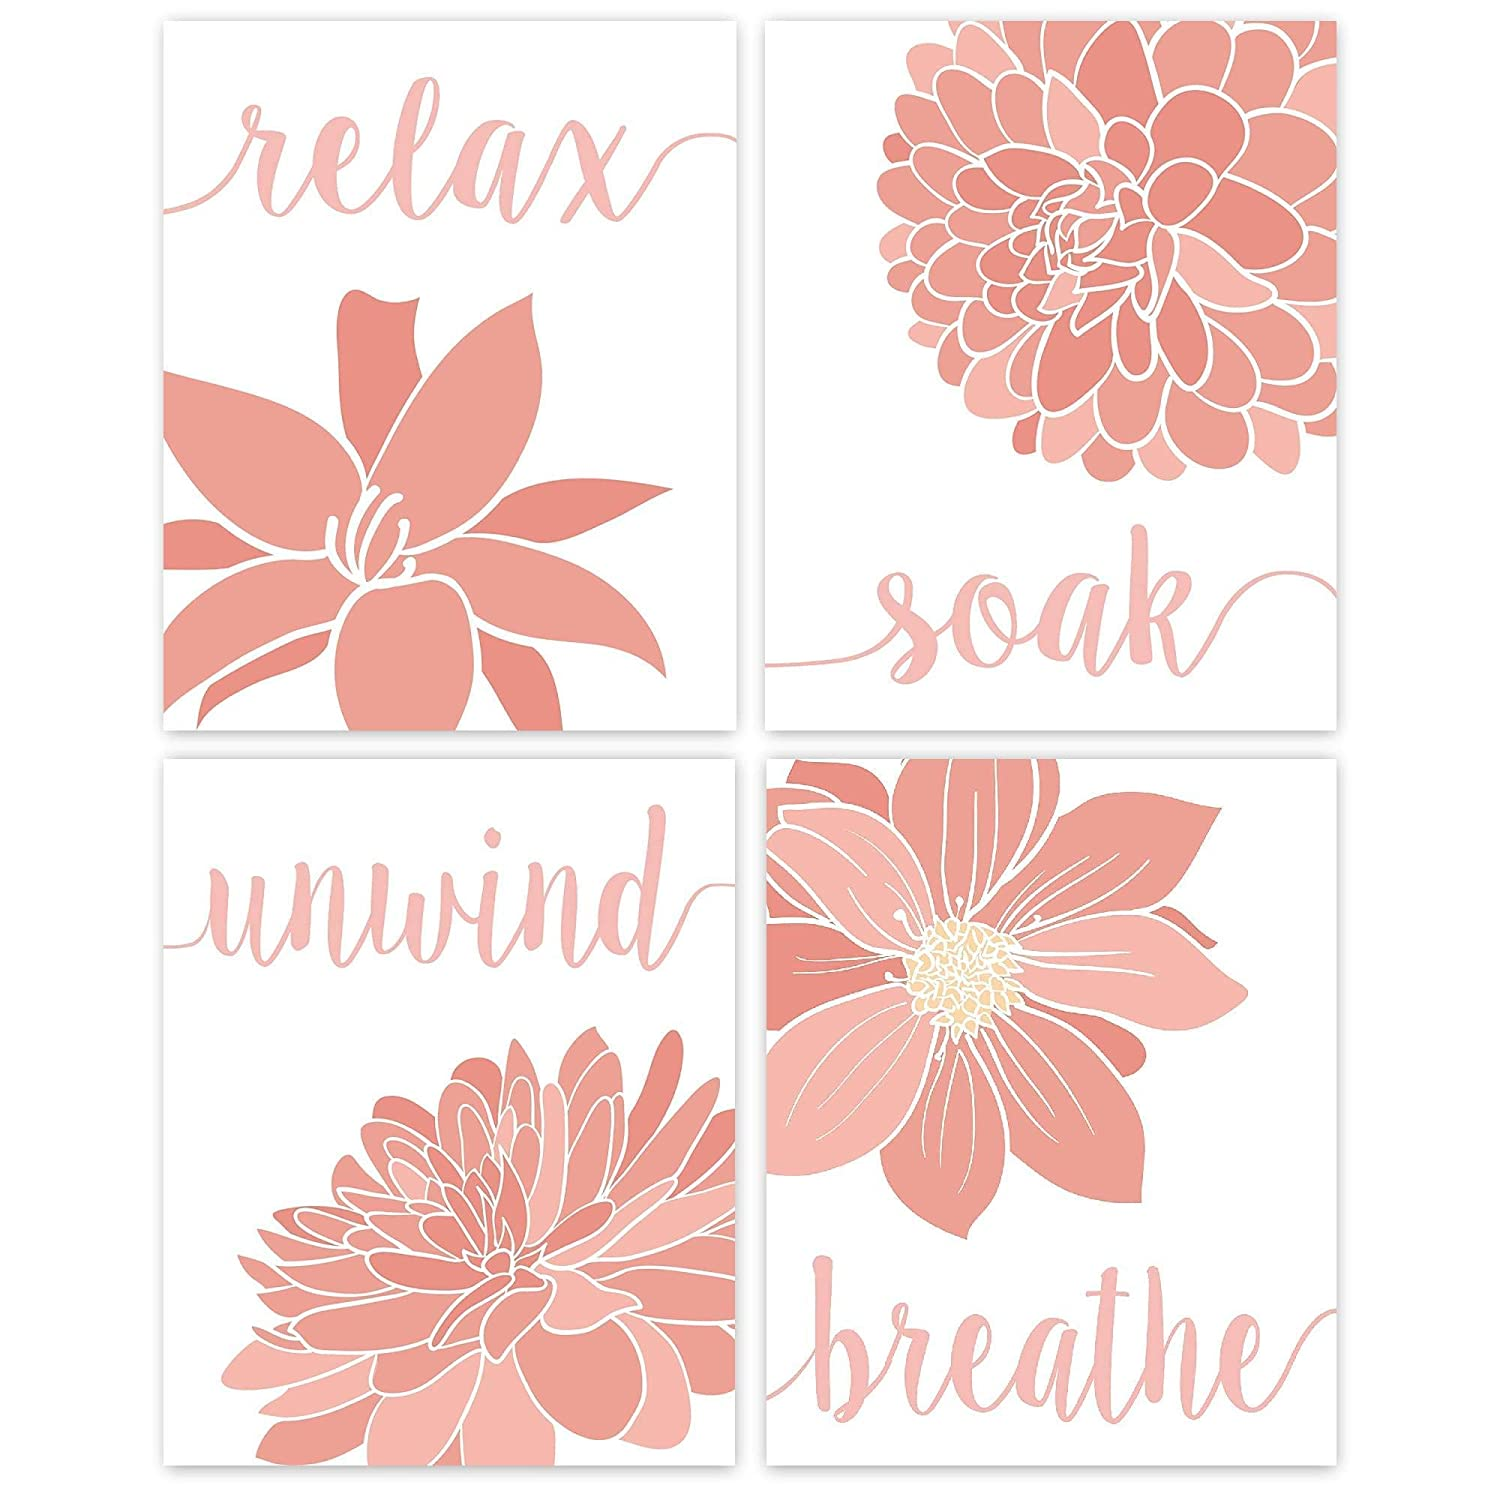 Relax, Soak, Unwind, Breathe Pink & White Bath Flower Poster Prints, Set of 4 (8x10) Unframed Photos, Wall Art Decor Gifts Under 20 for College, Home, Studio, Student, Teacher, Floral Fan